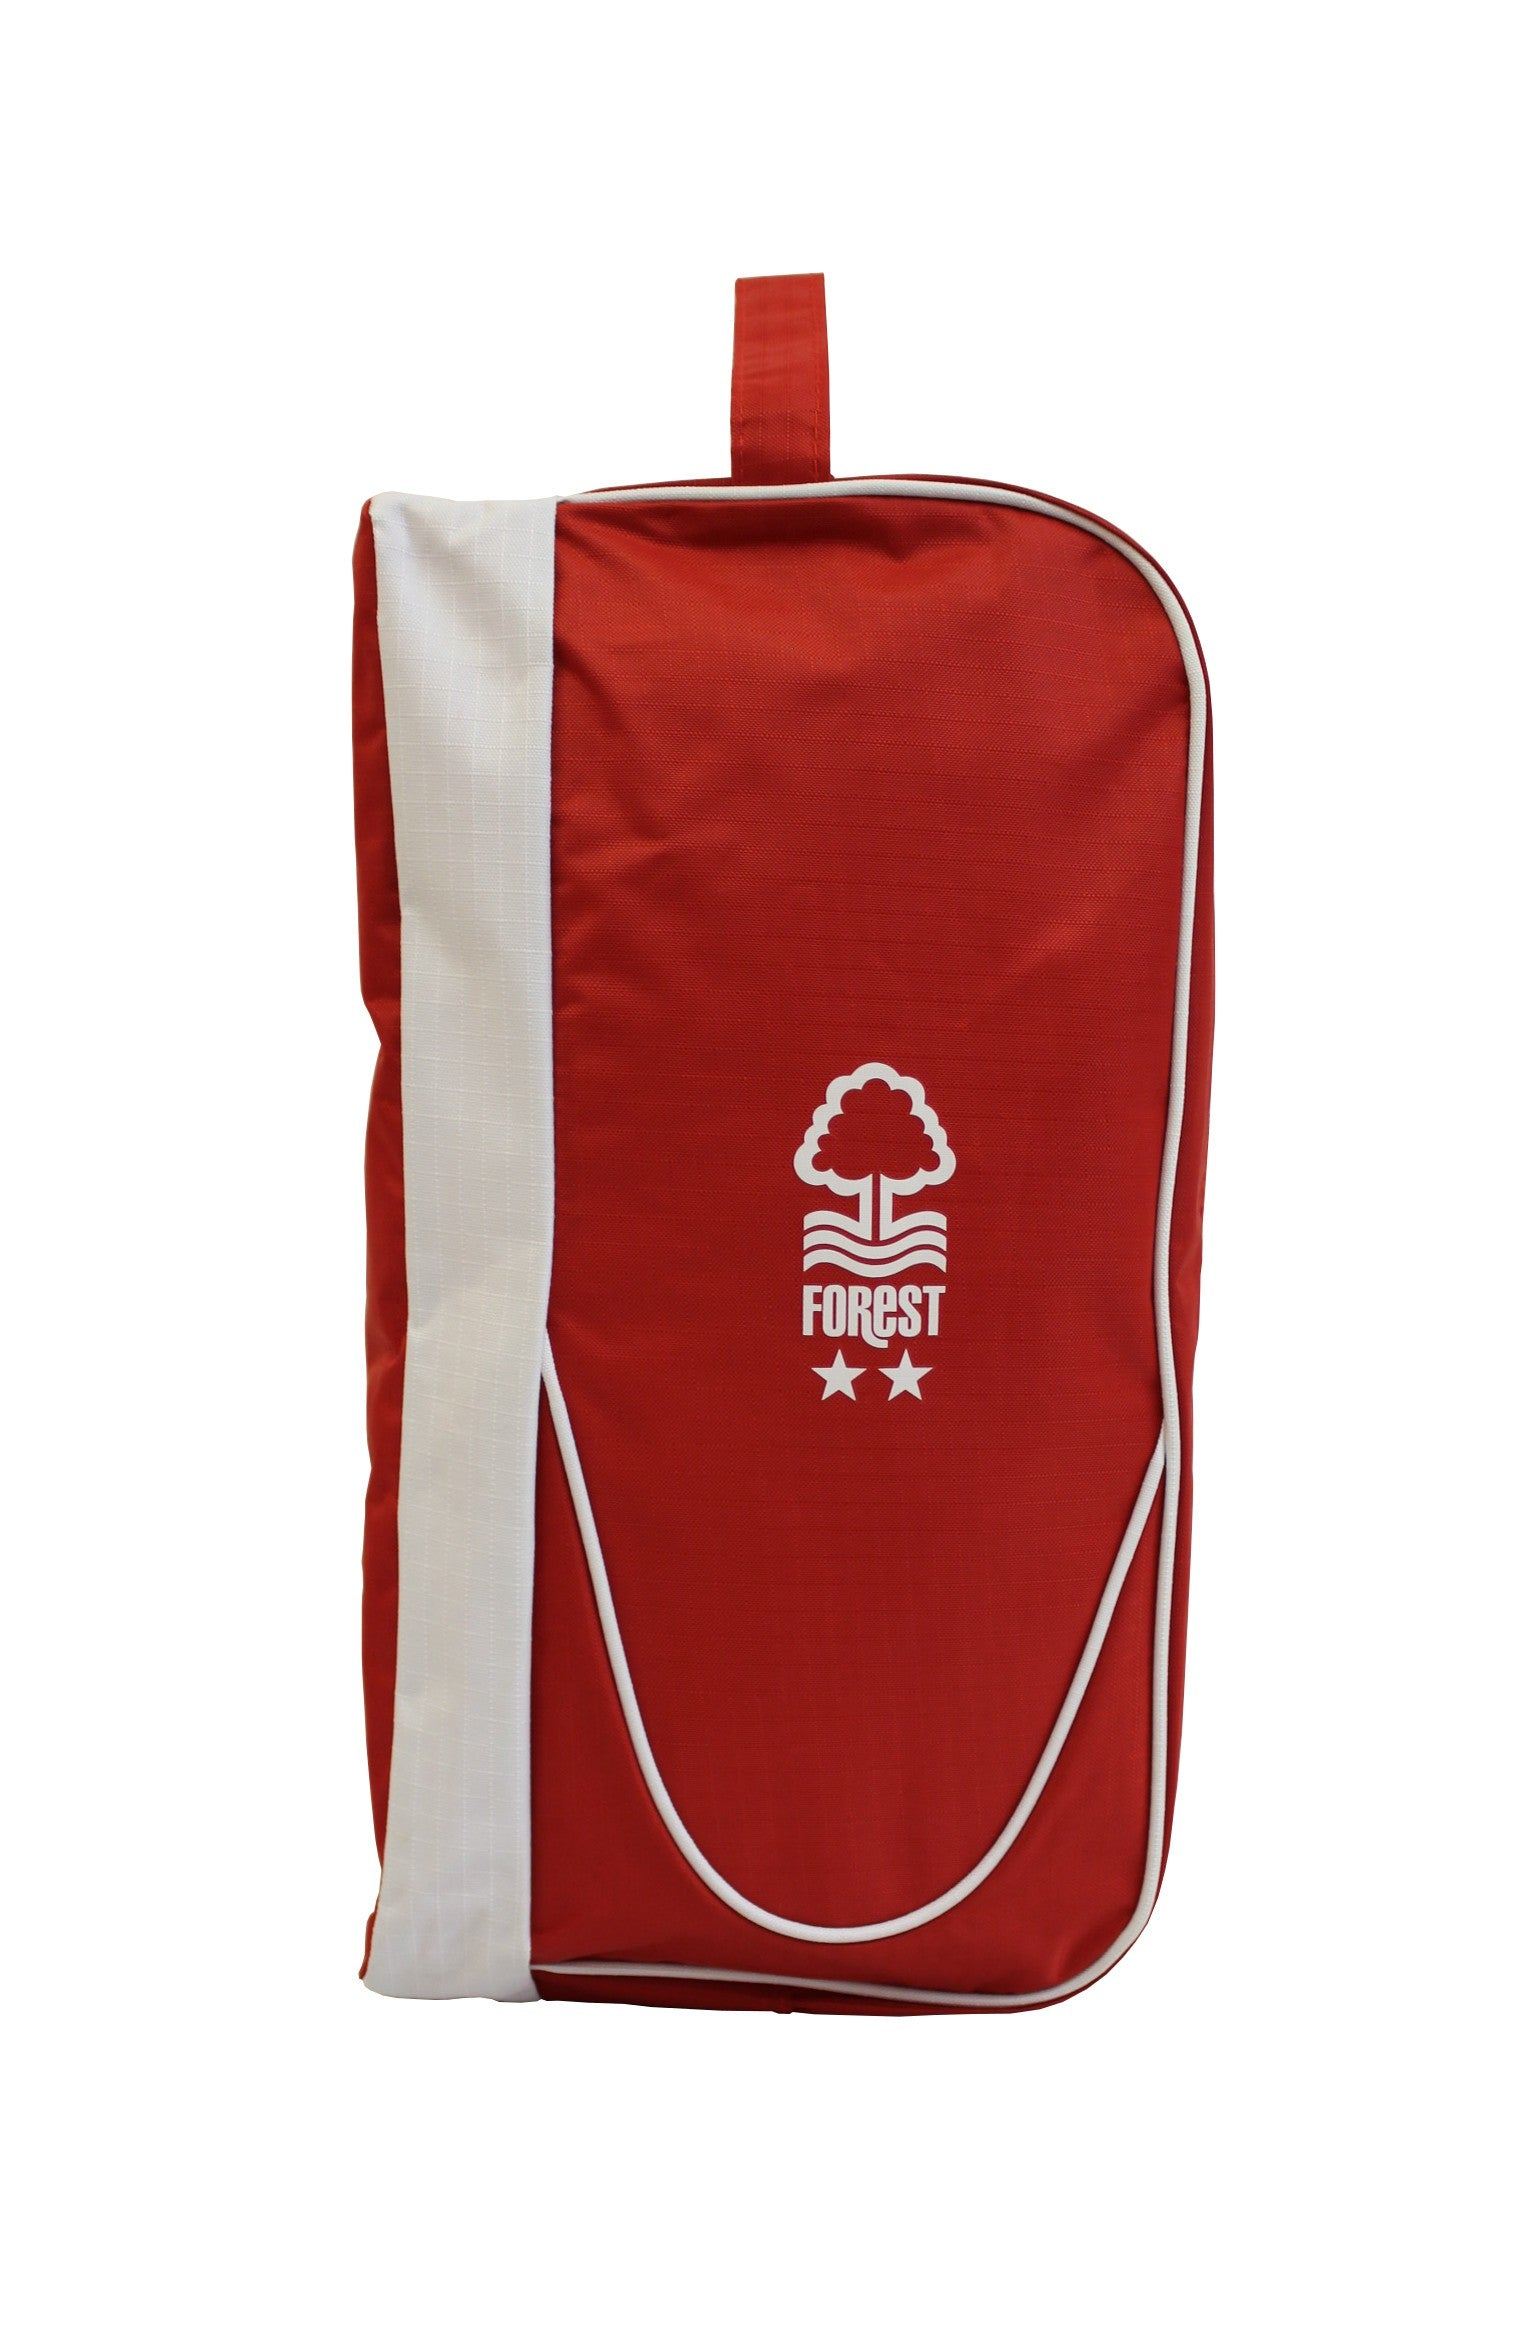 NFFC Red Core Boot Bag - Nottingham Forest